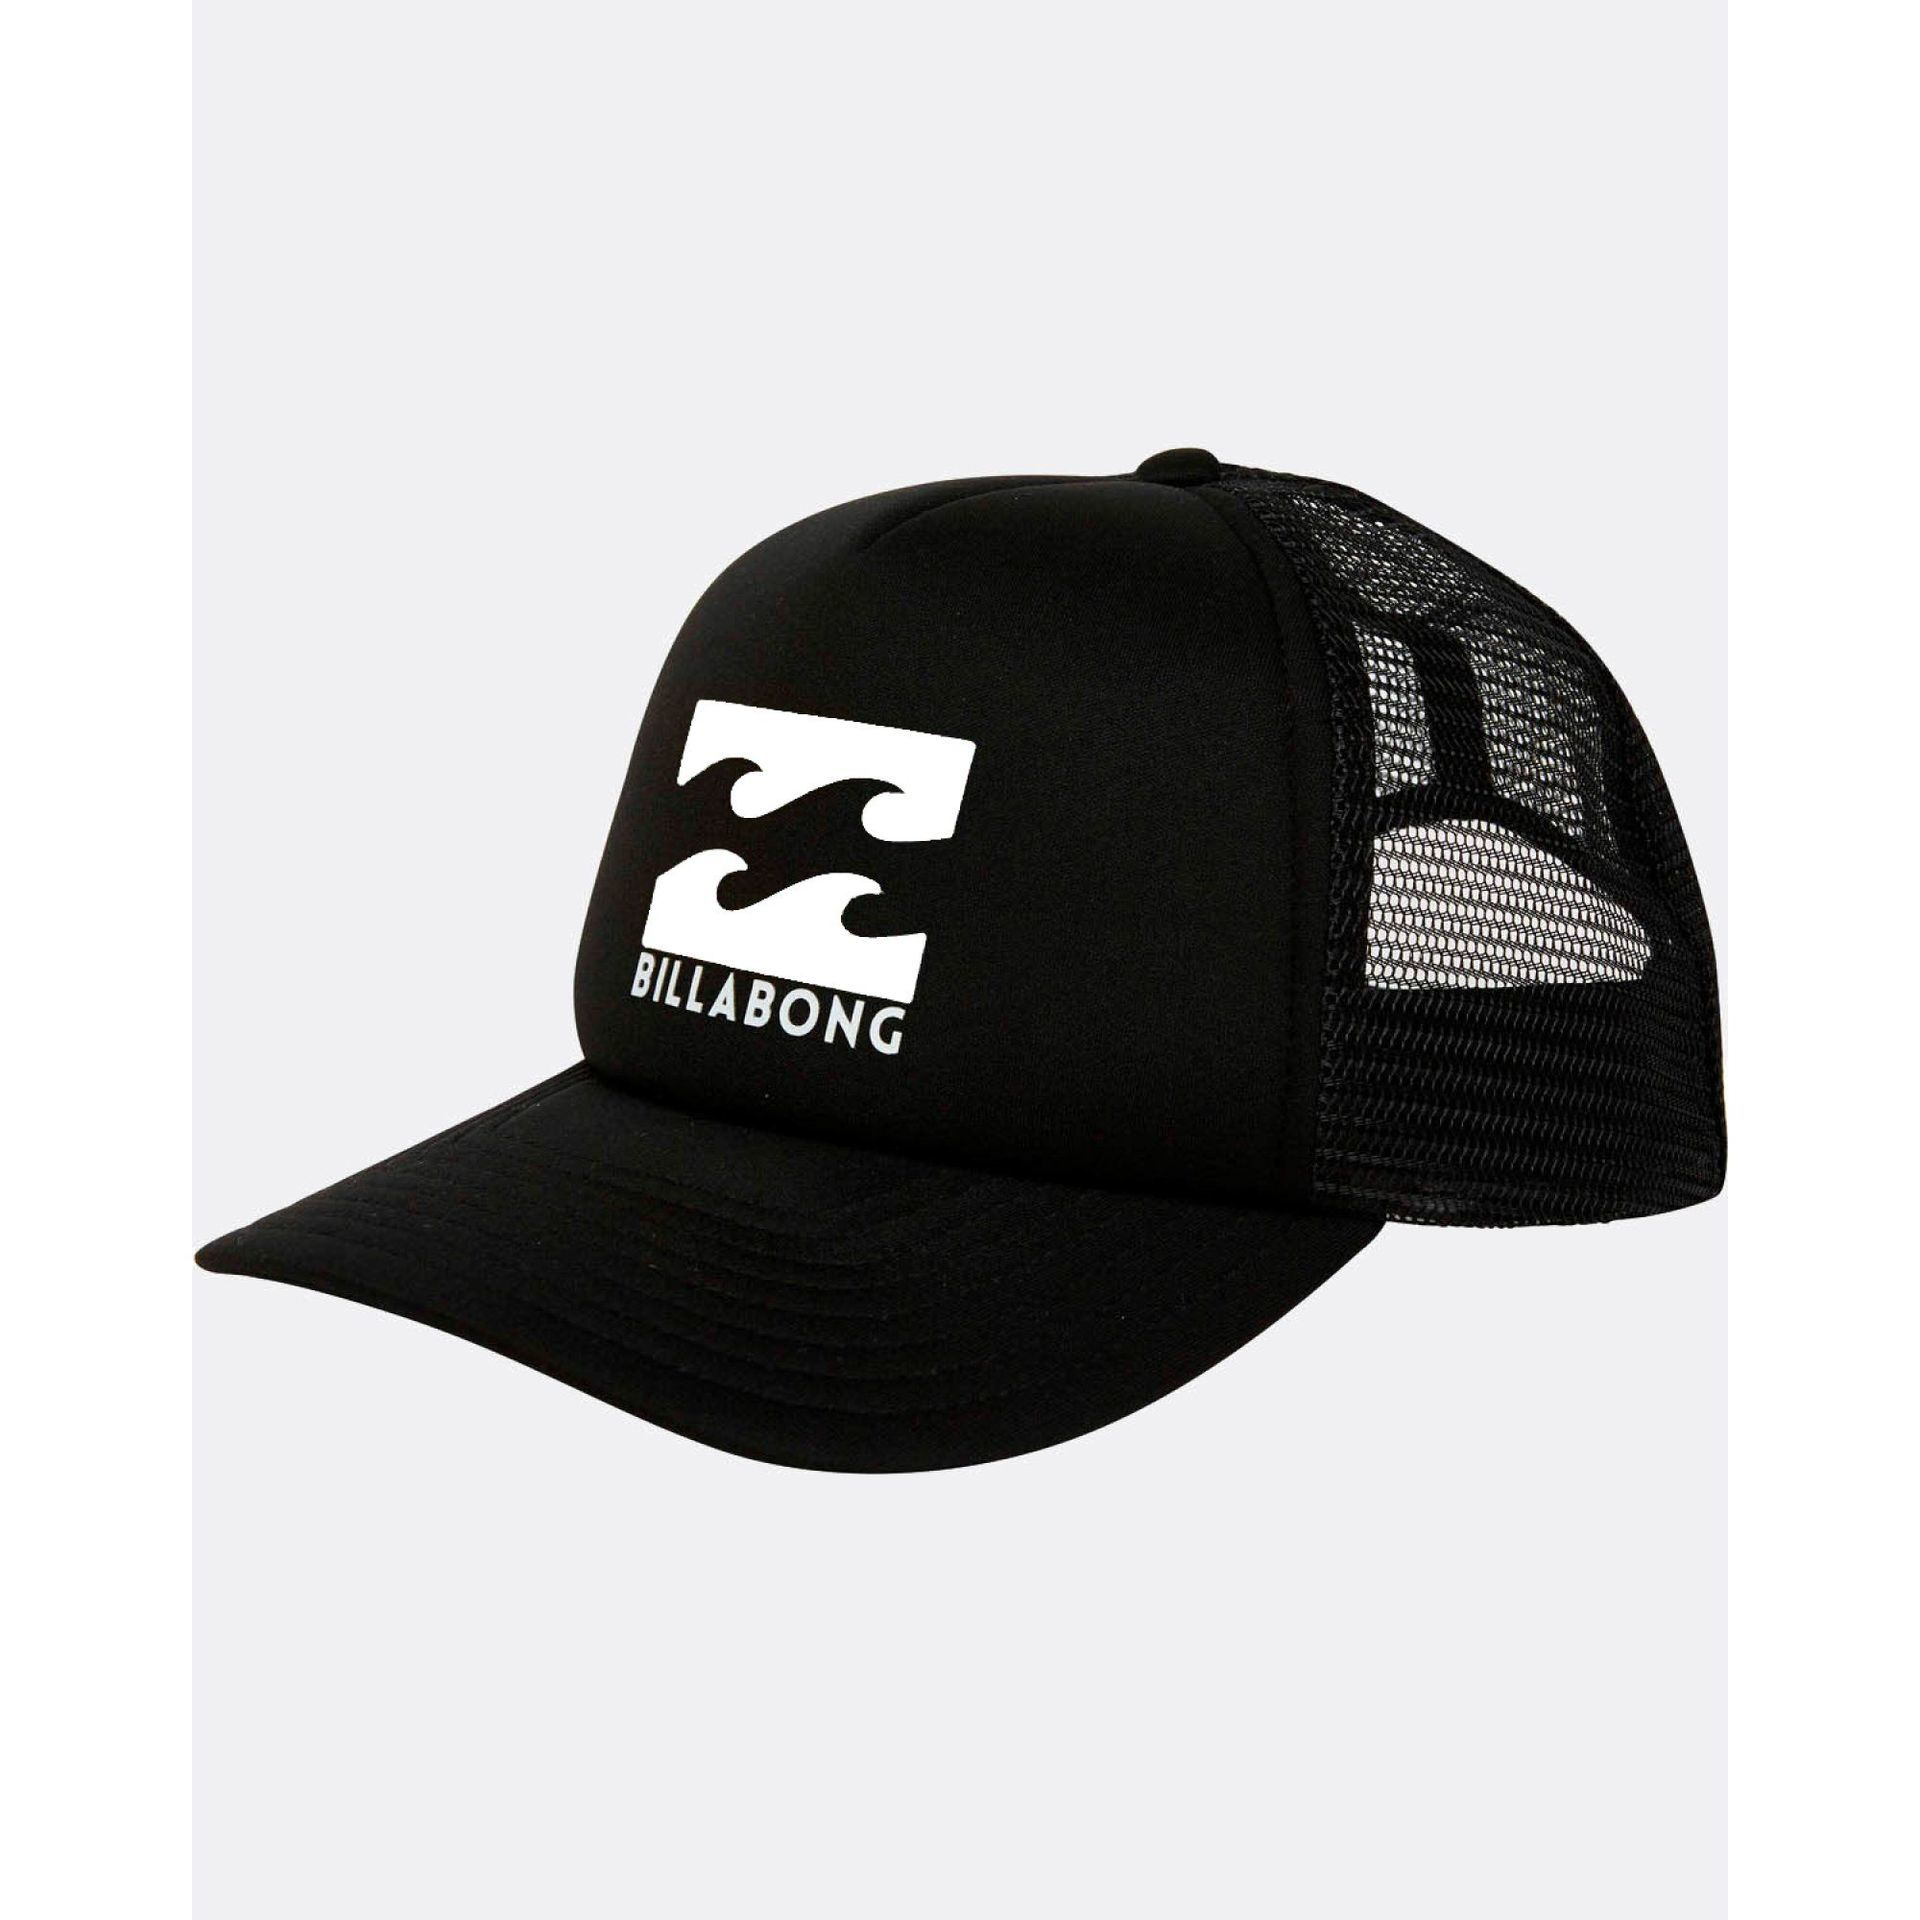 CZAPKA Z DASZKIEM BILLABONG PODIUM BLACK|WHITE